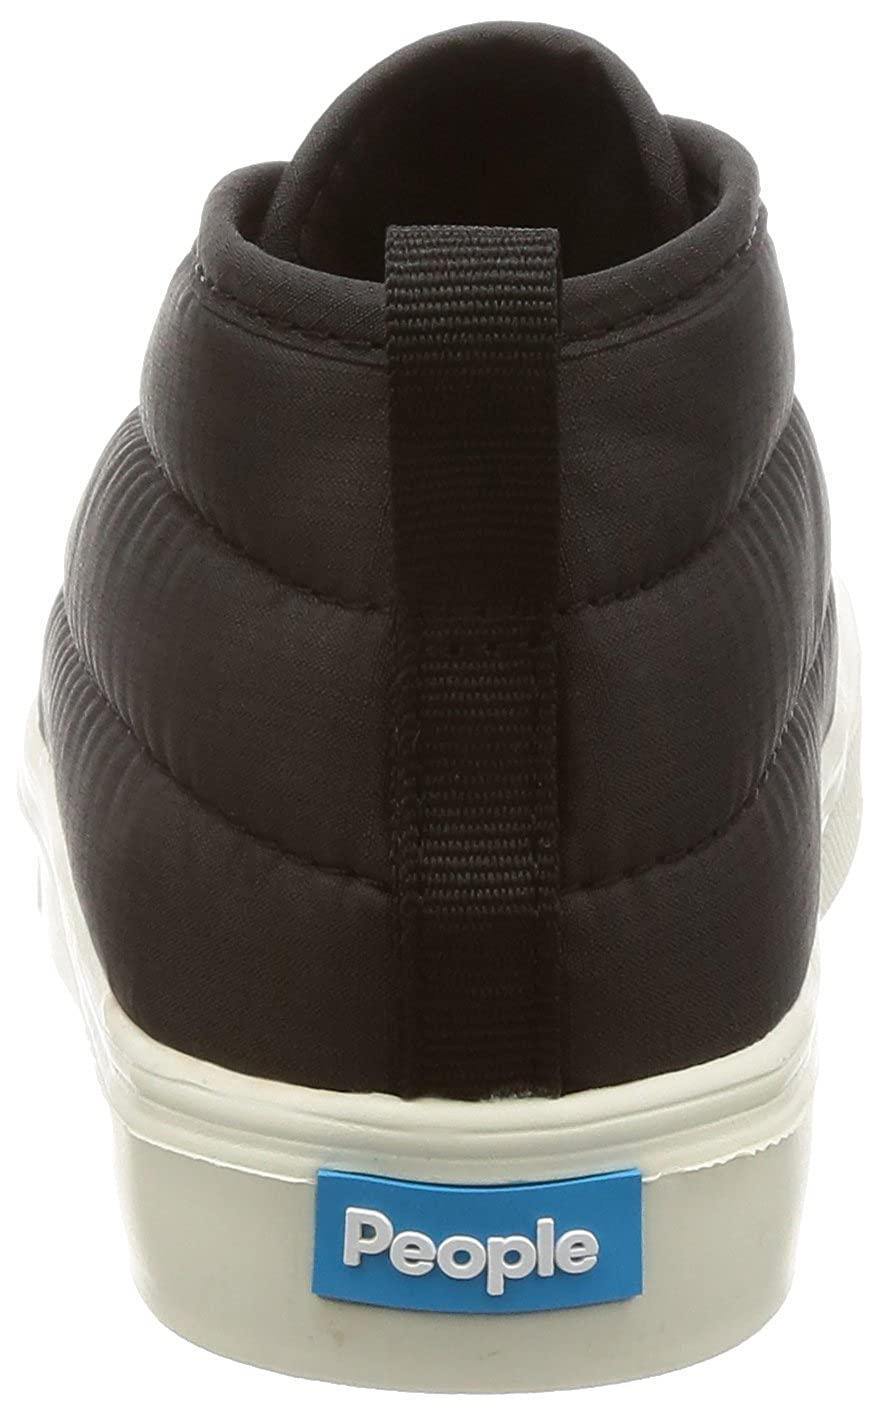 People Footwear Cypress Youth Round Toe Synthetic Black Chukka Boot